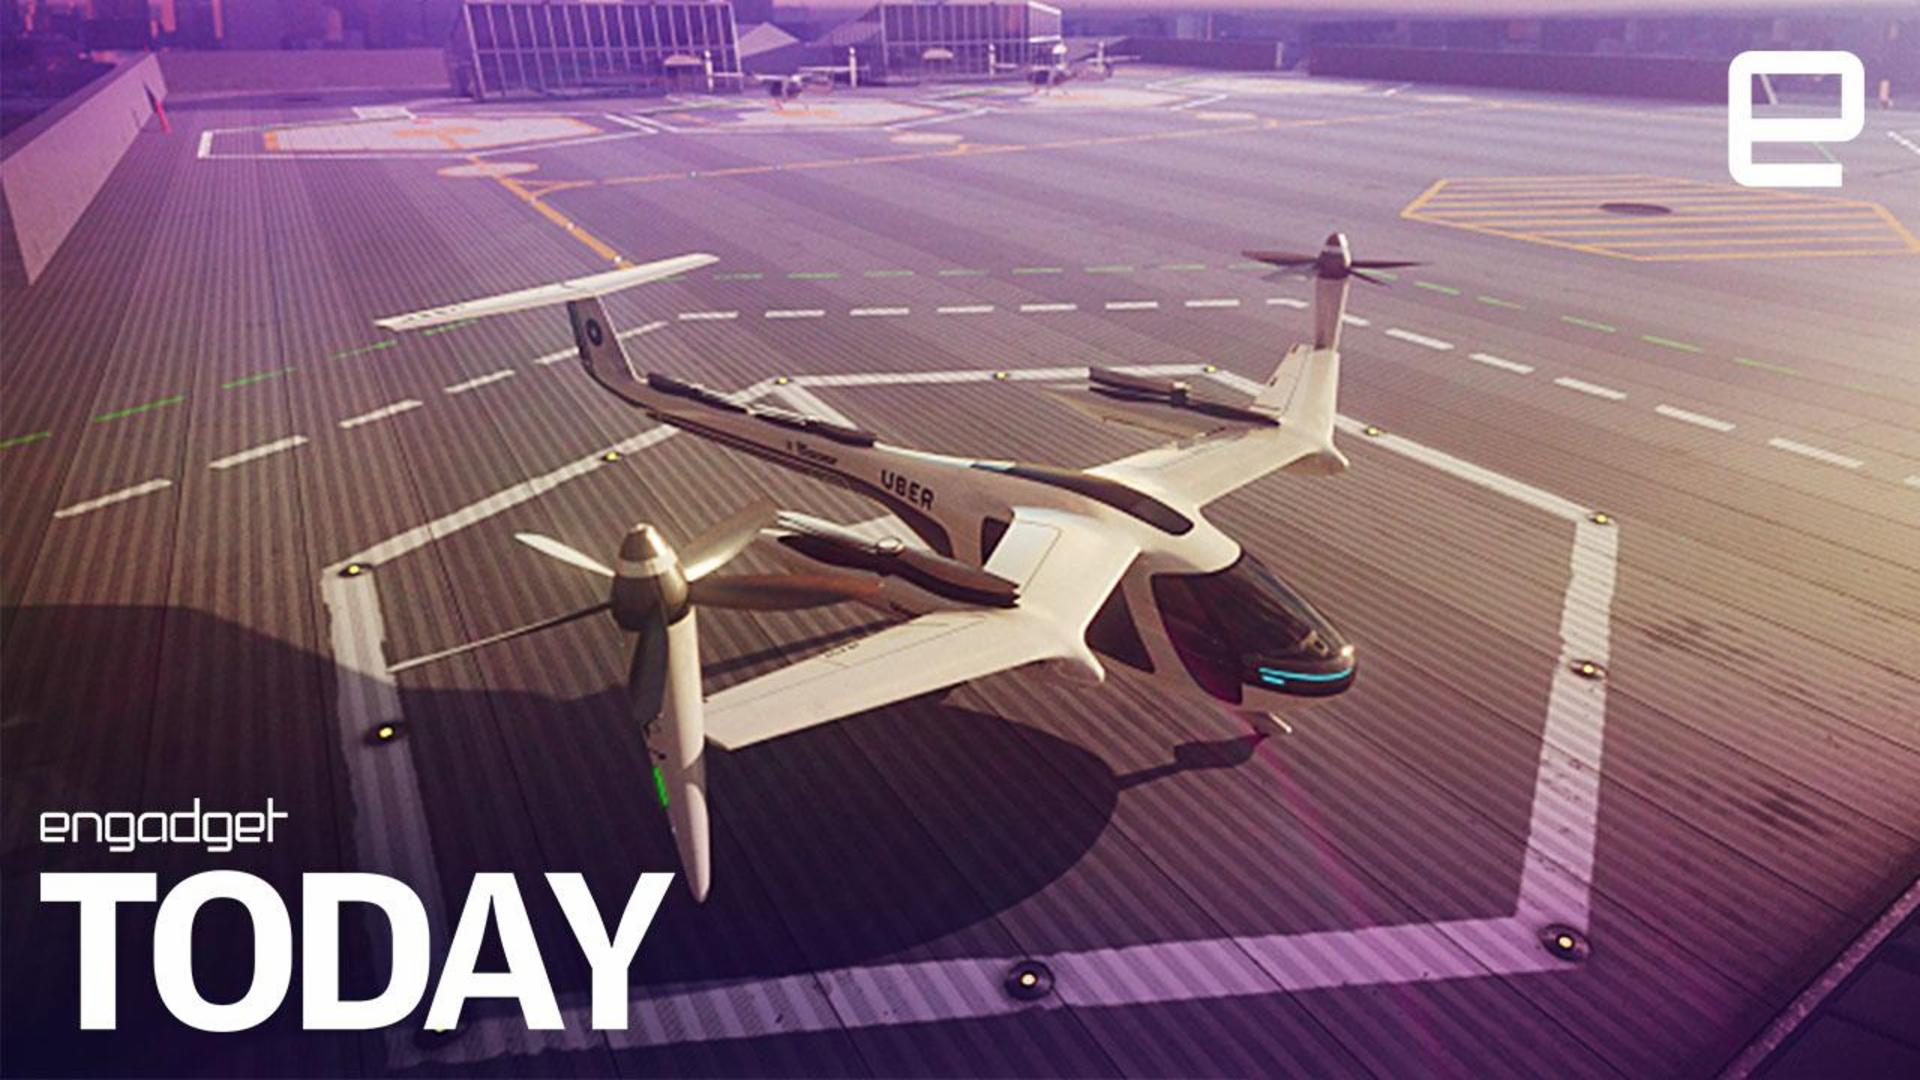 Uber works with NASA to get flying taxis ready by 2020